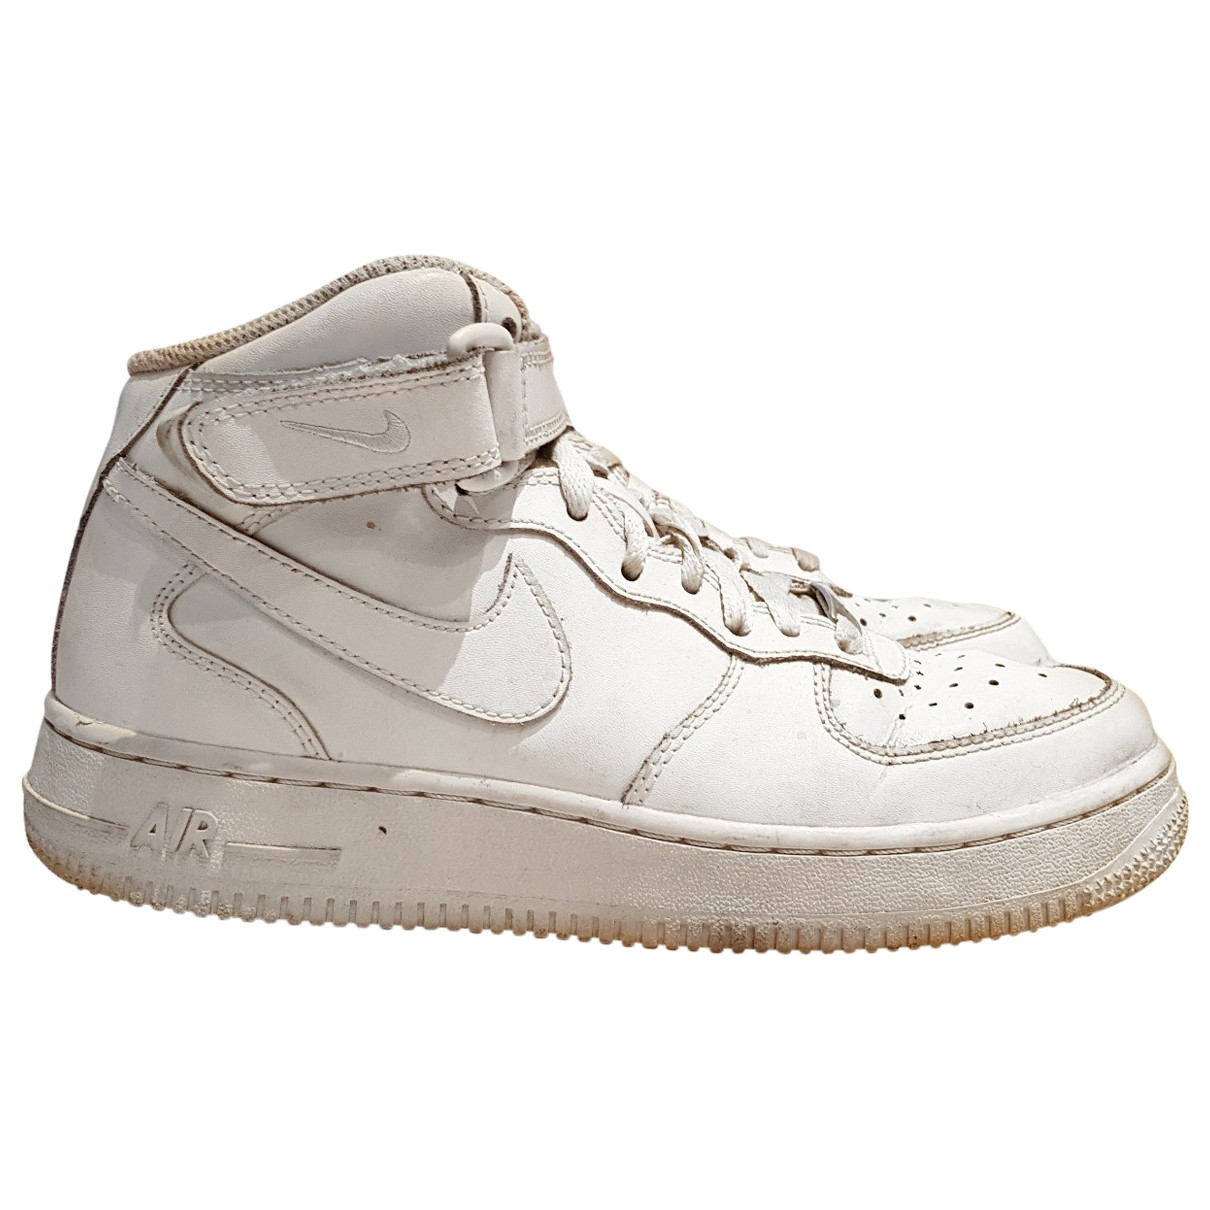 Nike Air Force 1 White Rubber Trainers for Women 38 EU